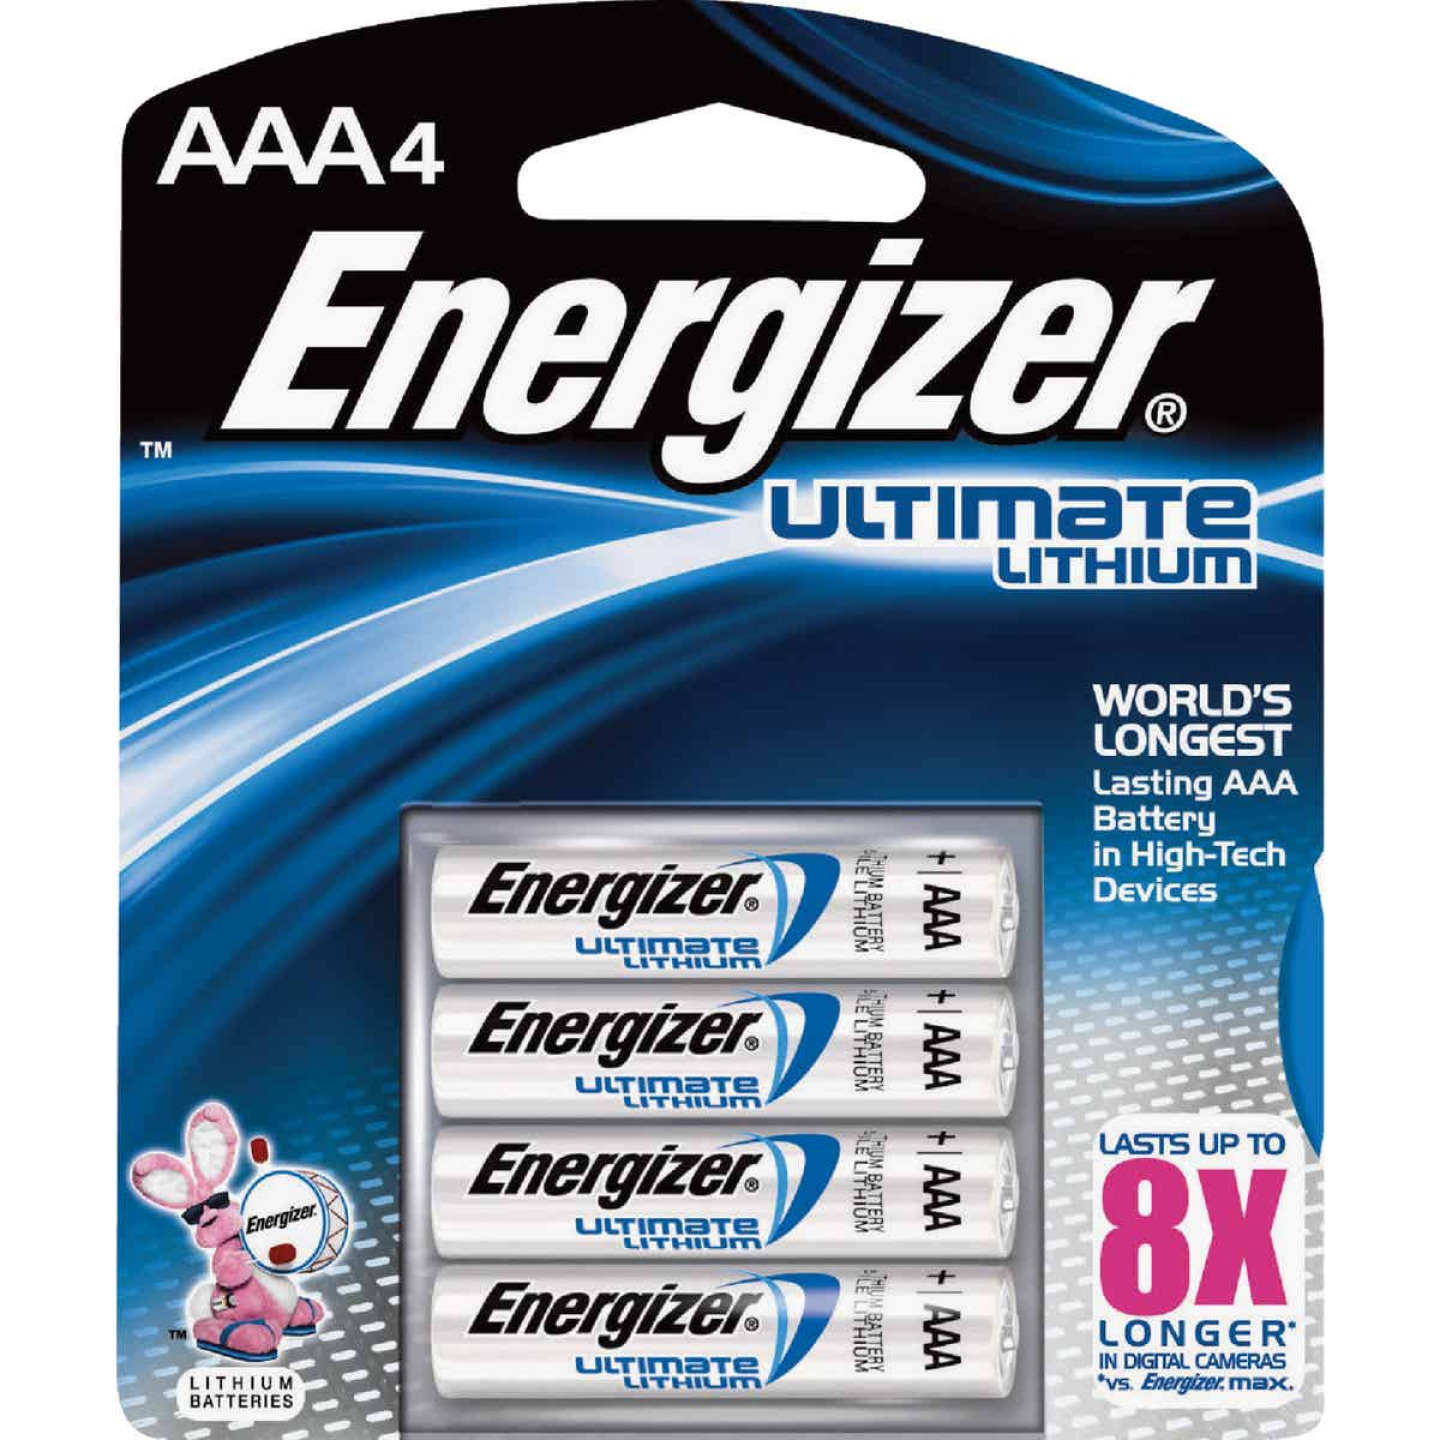 Energizer AAA Ultimate Lithium Battery (4-Pack) Image 1